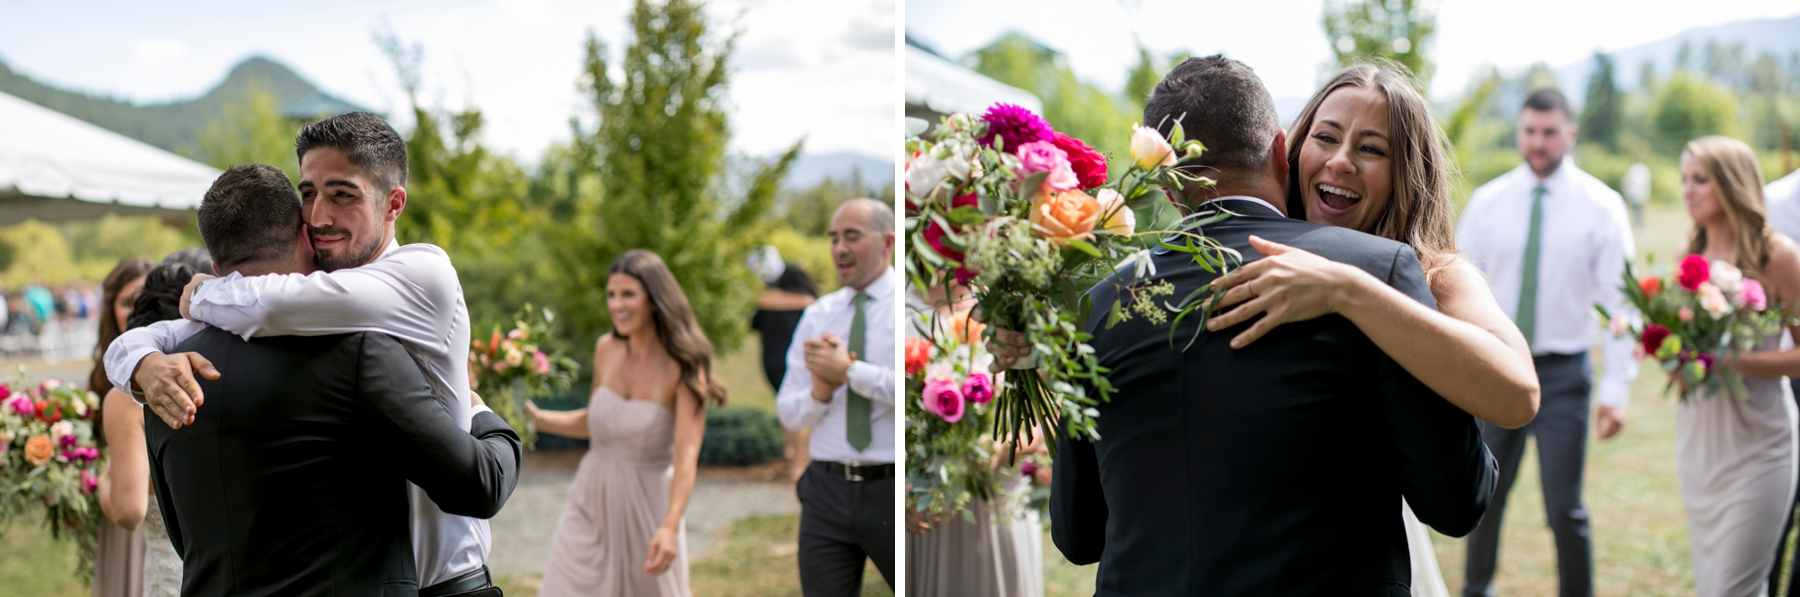 seatte, wedding, photographer, North Bend, Bybee Farms, Snoqualmie, issaqua,_0052.jpg